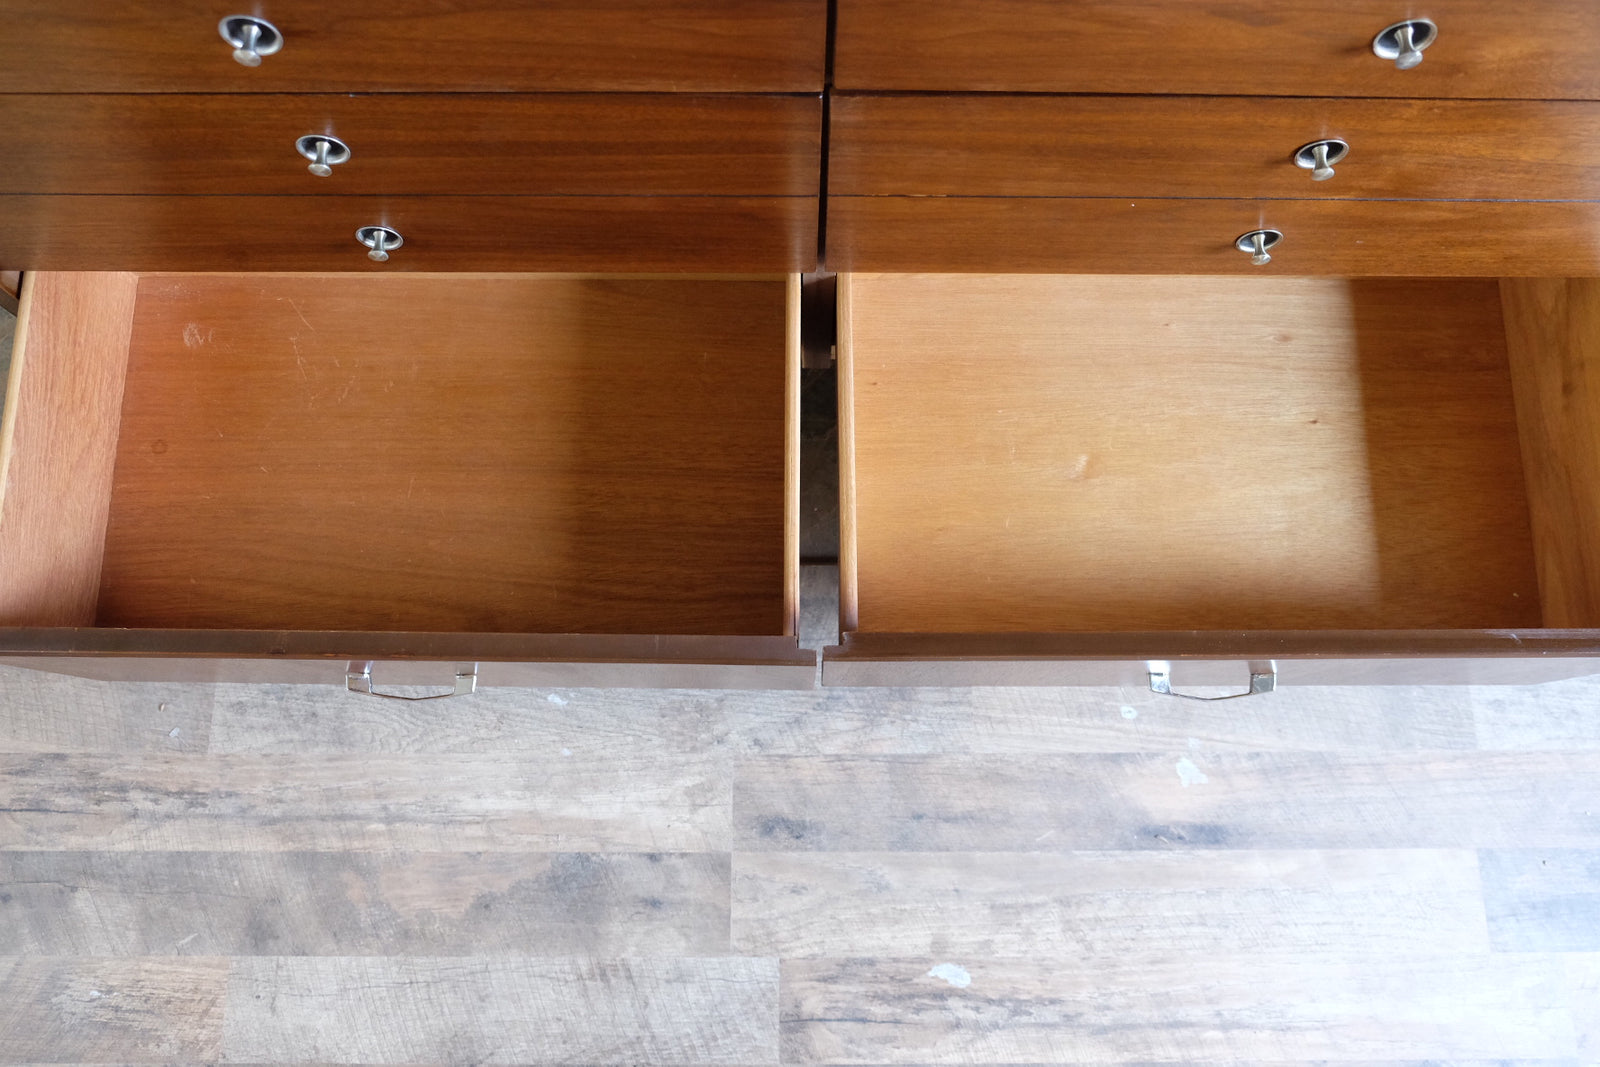 Double Low Dresser Mid Century Modern Set Silver Trumpet Pulls with Circular Black Accents Chrome Chevron Pulls Walnut Veneer